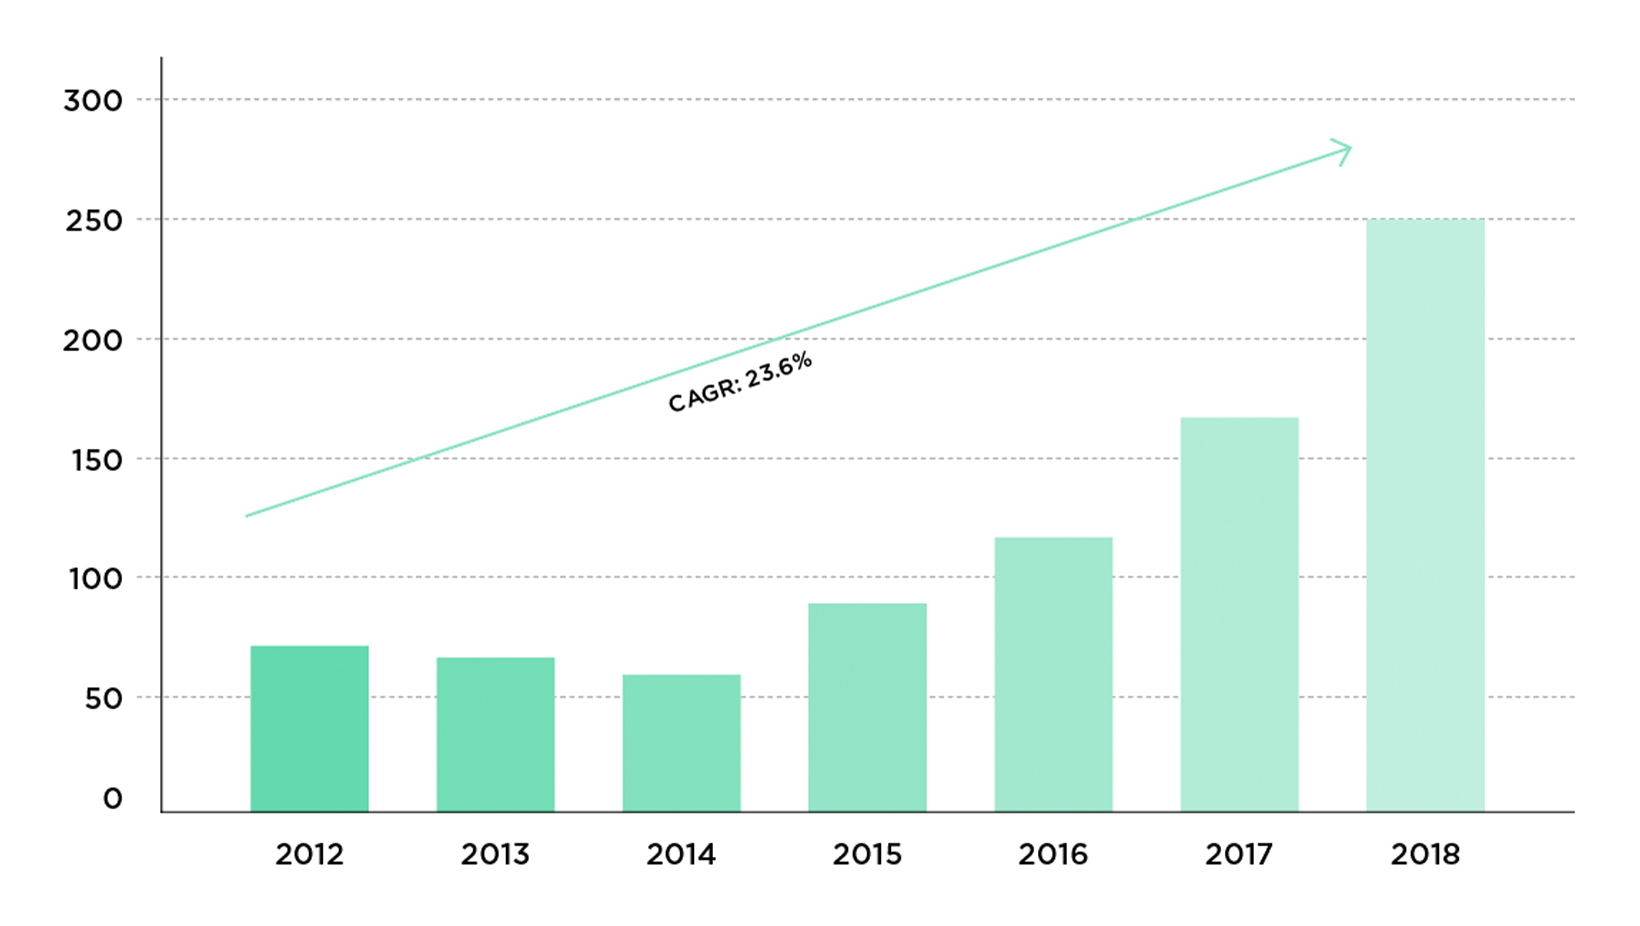 U.S. Physician Group M&A Transactions by Year